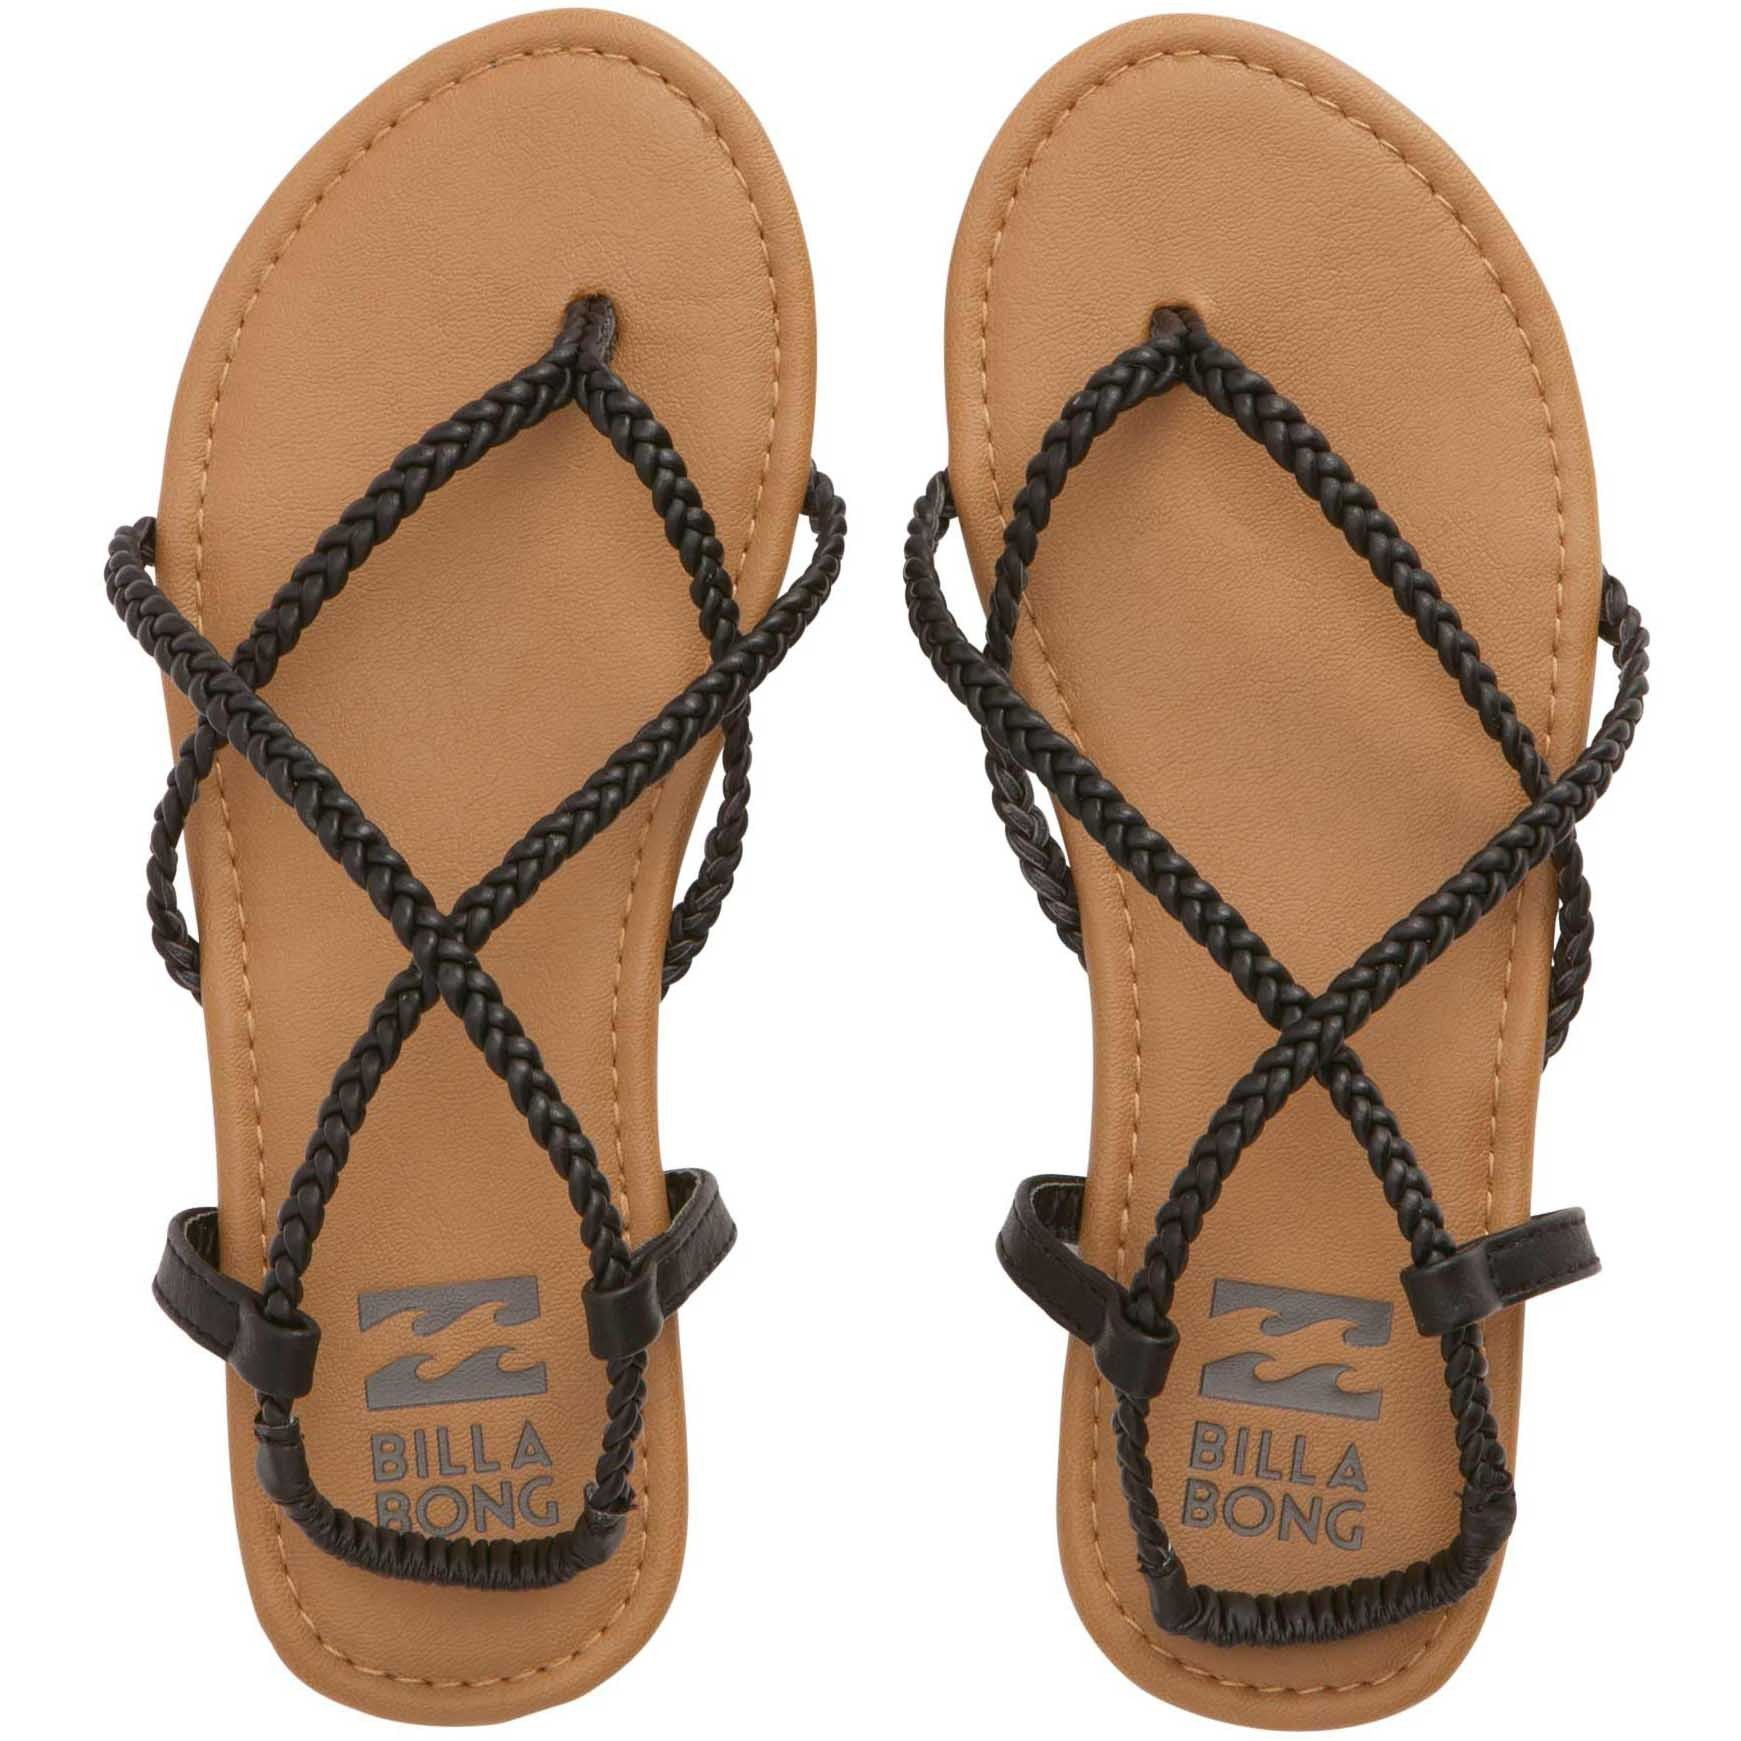 Billabong Crossing Over Sandal A cross between a slim silhouette and  nomadic lines, this versatile